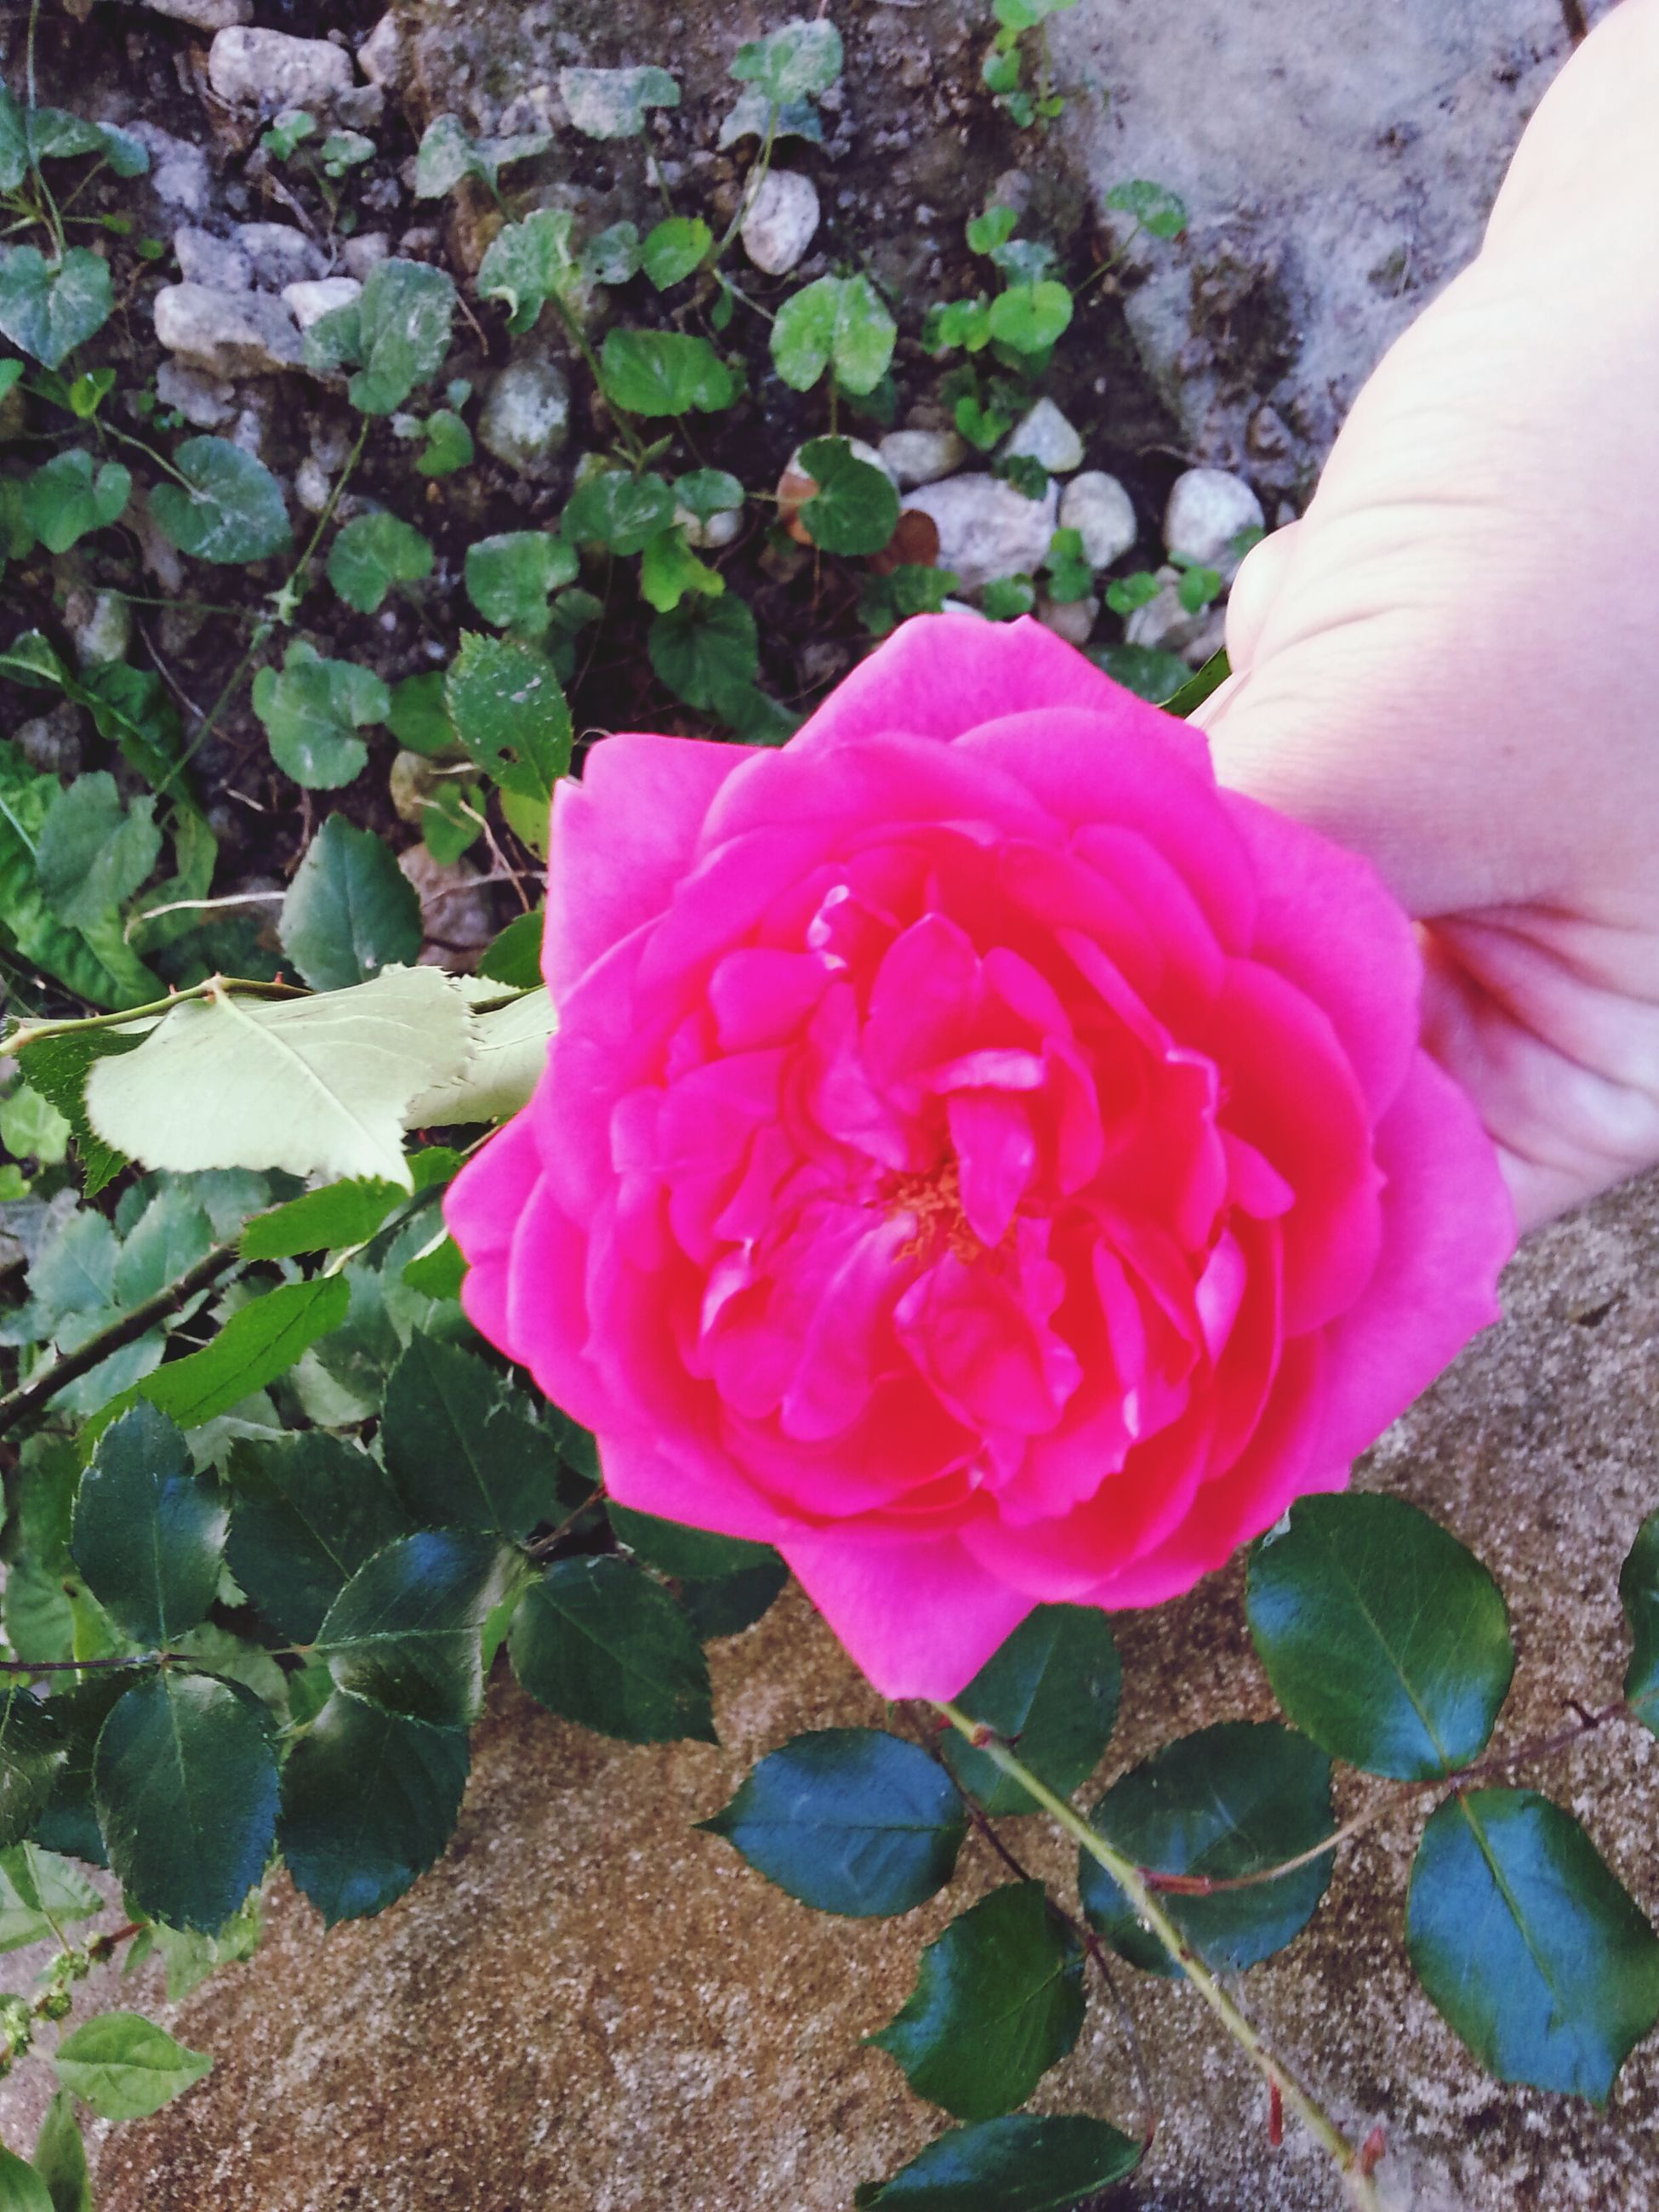 flower, petal, pink color, fragility, freshness, flower head, growth, beauty in nature, close-up, one person, plant, high angle view, leaf, nature, rose - flower, part of, single flower, pink, person, outdoors